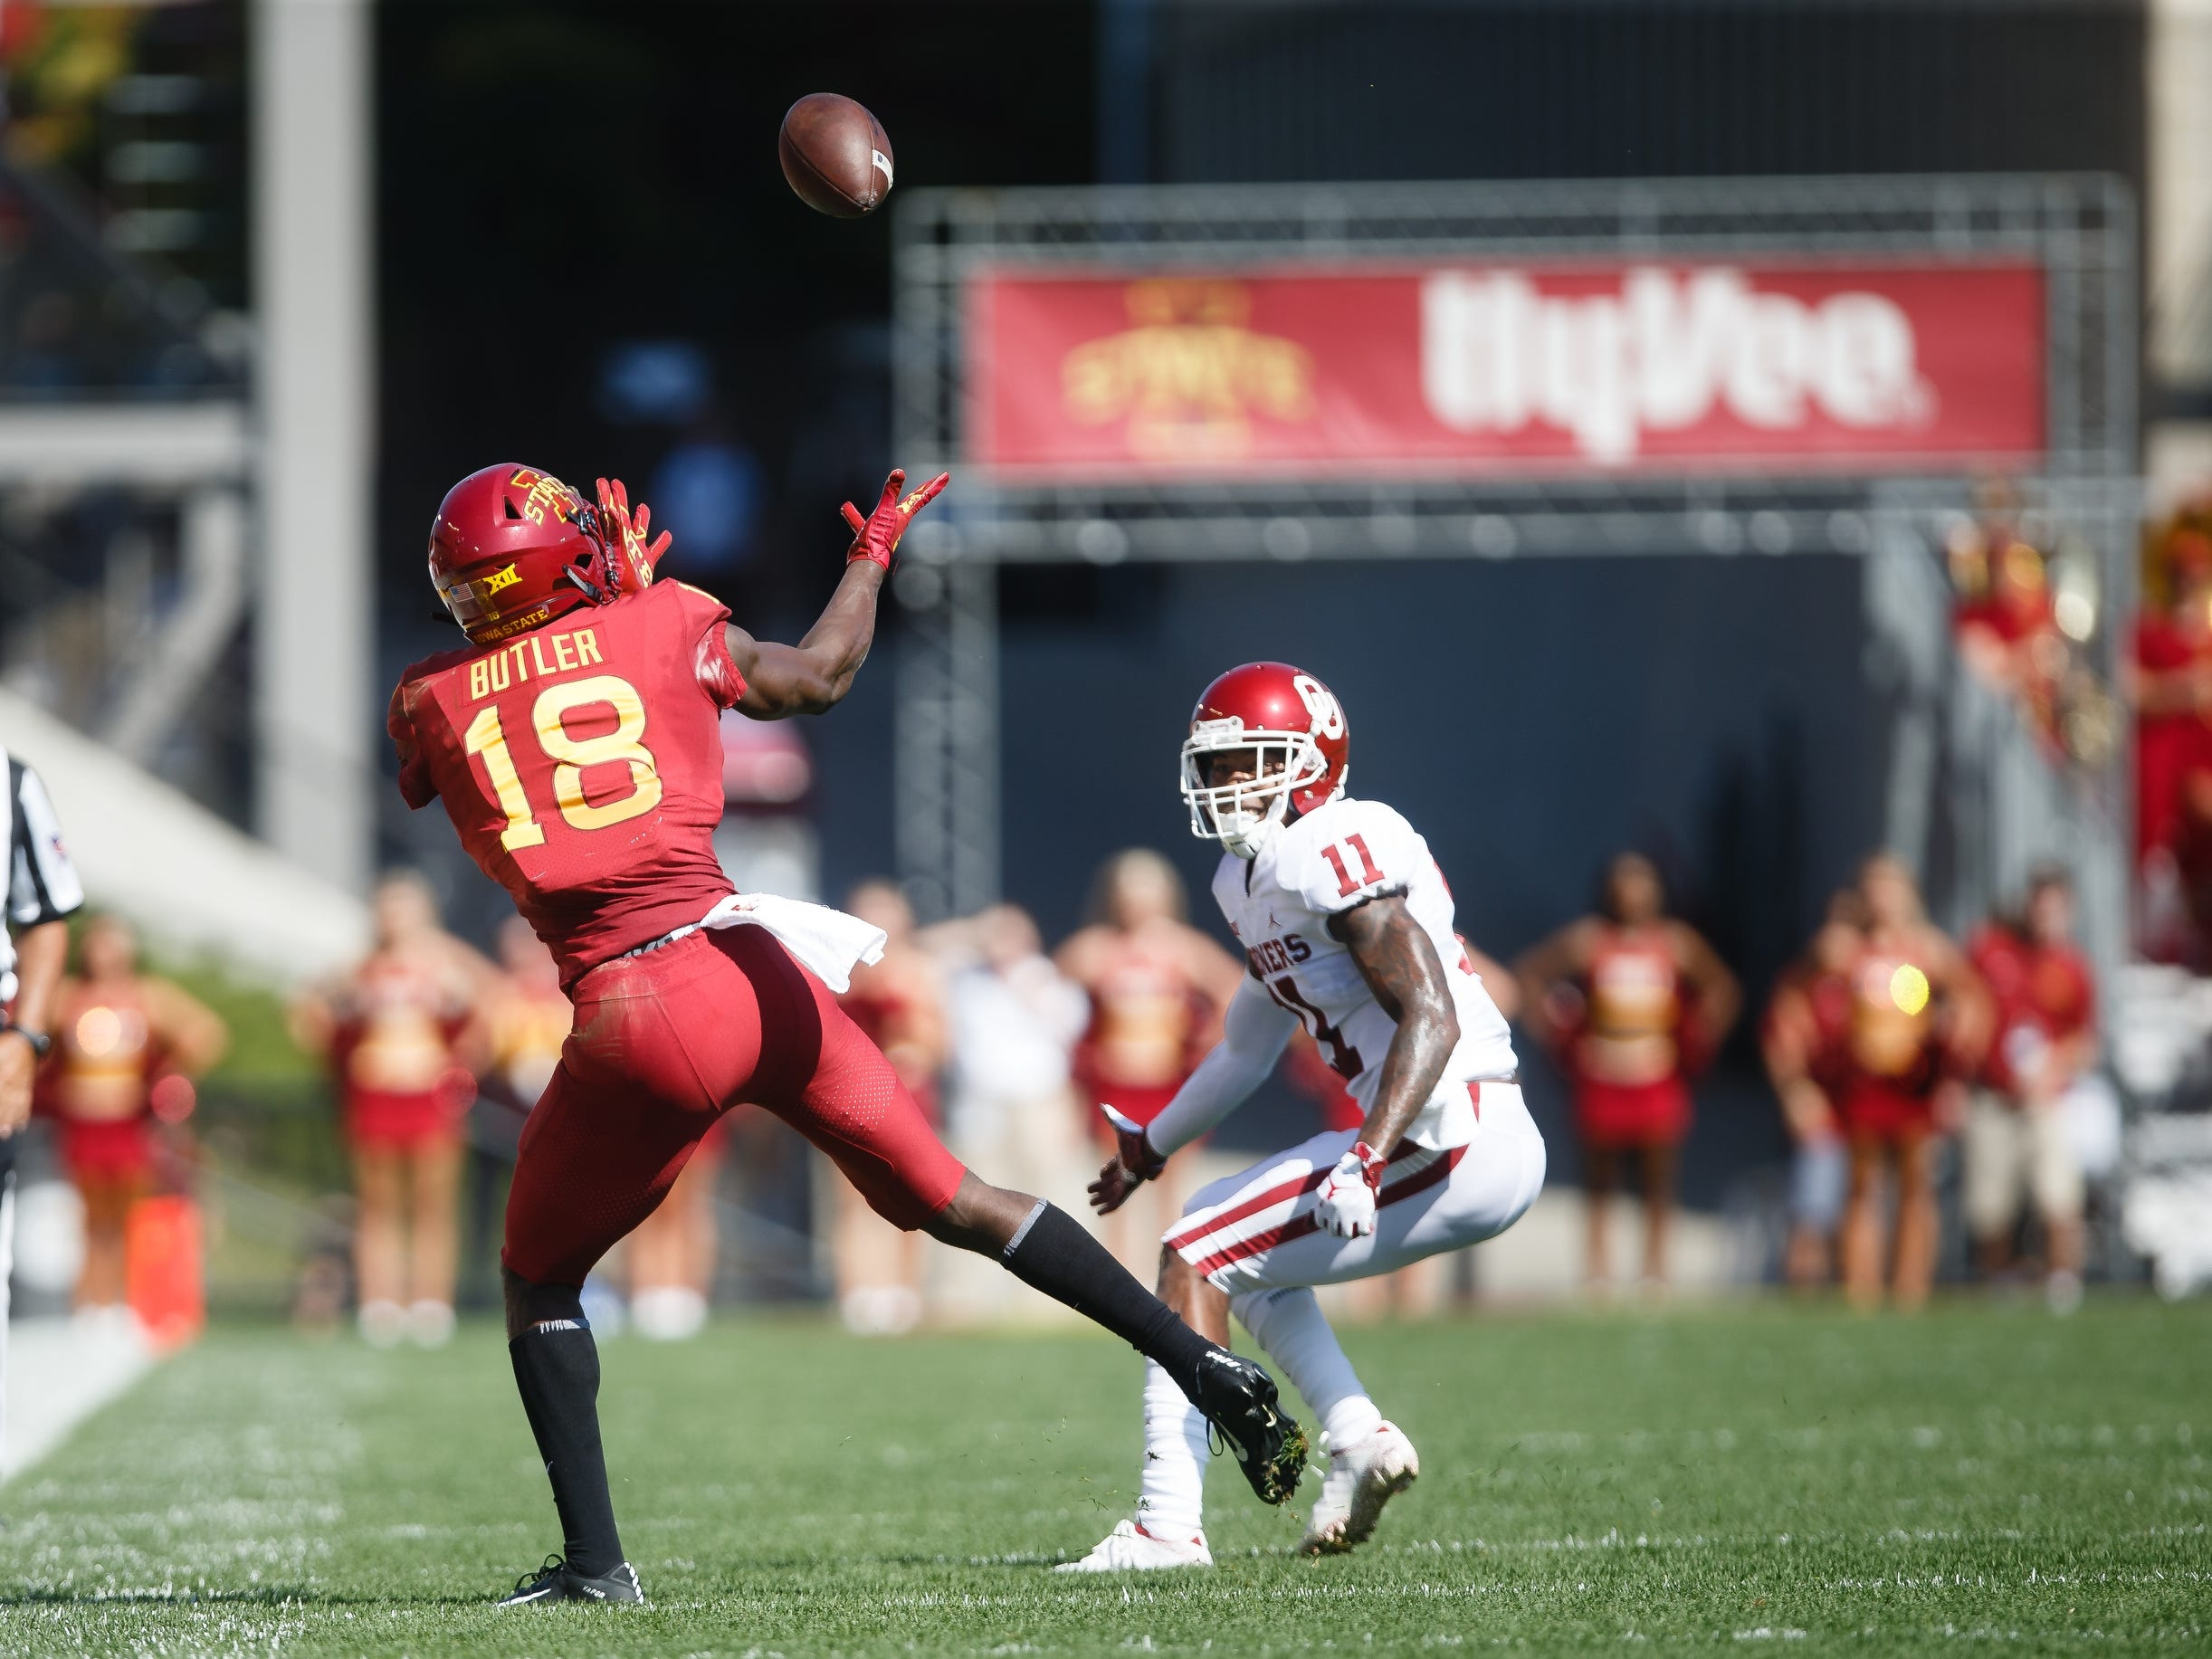 Iowa State's Hakeem Butler (18) bobbles a pass during their football game against Oklahoma at Jack Trice Stadium on Saturday, Sept. 15, 2018 in Ames. Oklahoma would go on to win 37-27.